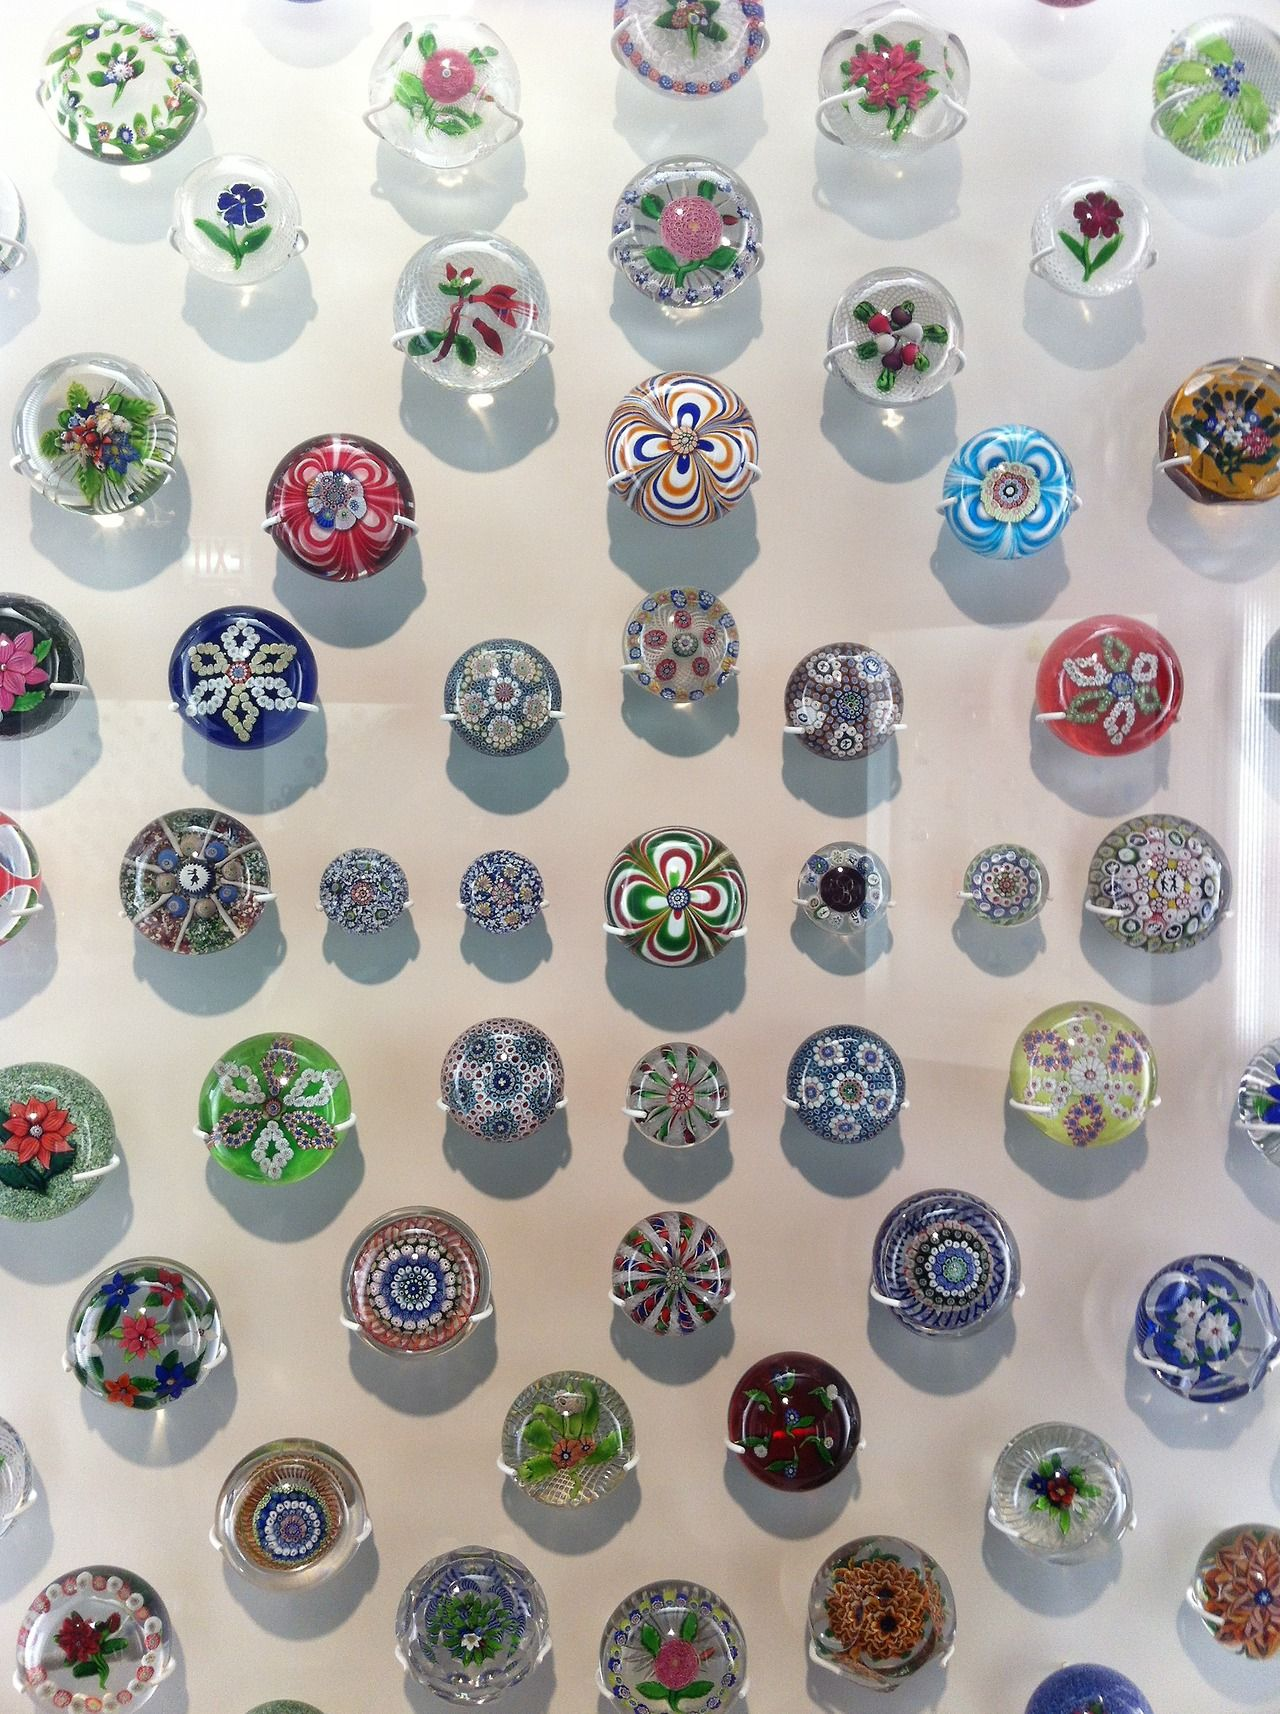 Typology of paperweights. Collection of the Art Institute, Chicago.